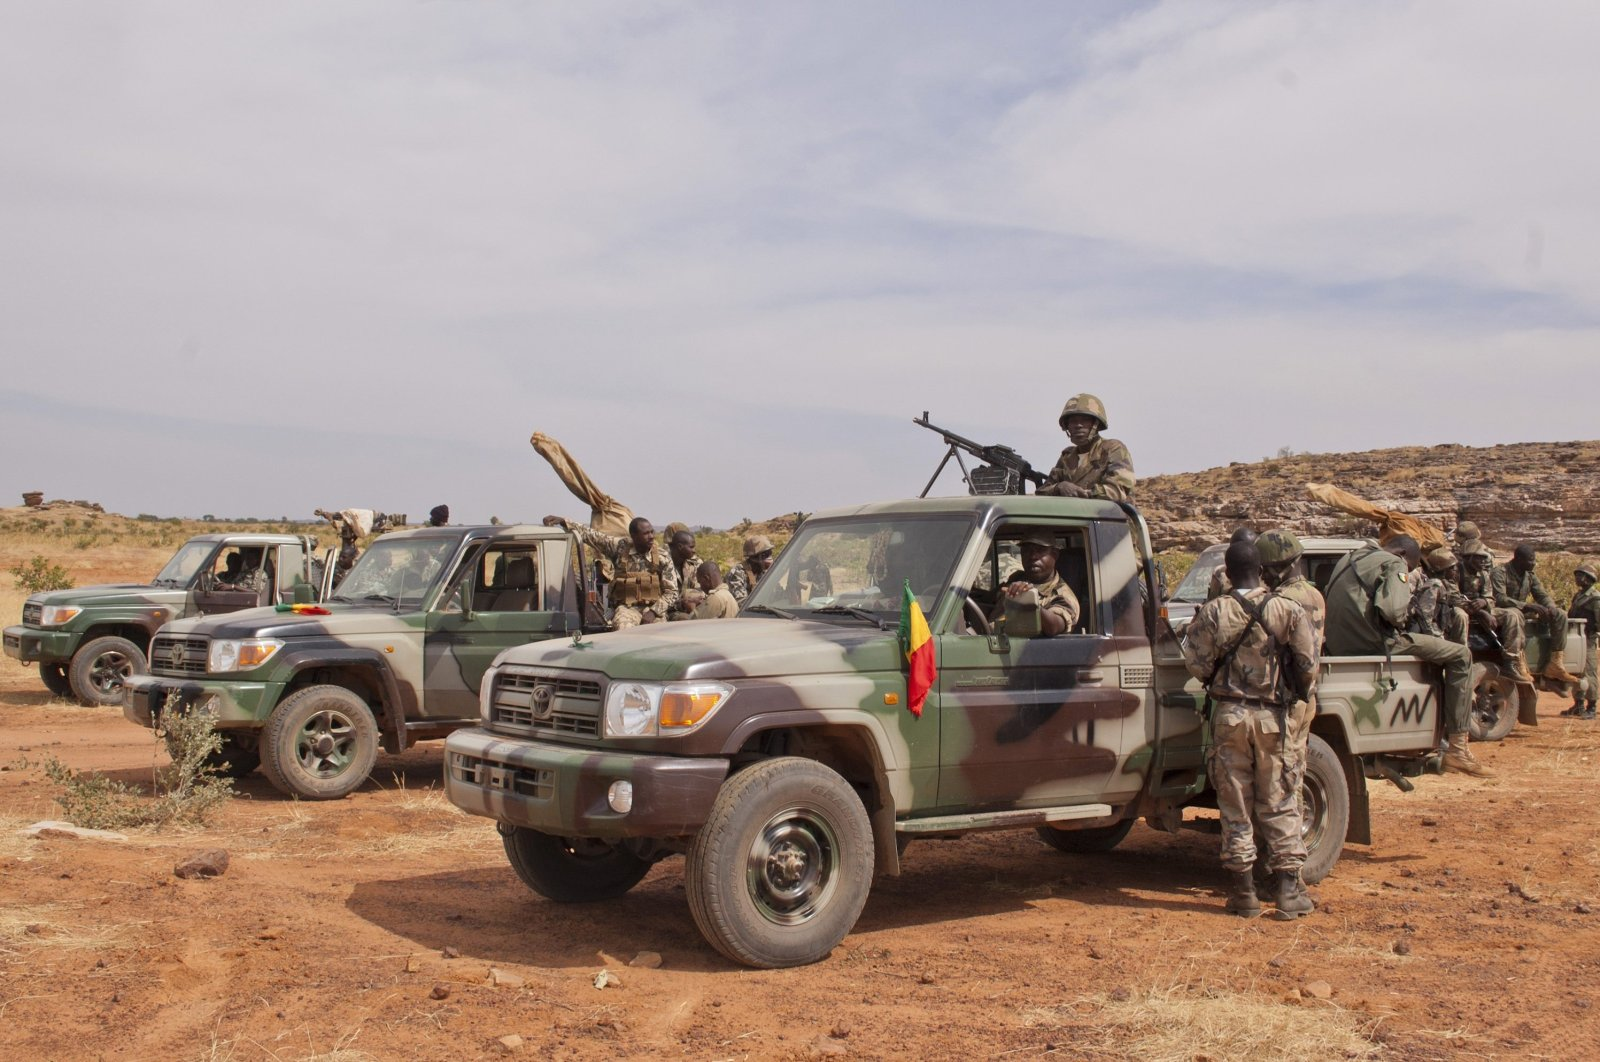 Soldiers from a Malian army special unit stand atop pick-ups mounted with machine guns, following a training exercise in the Barbe military zone, in Mopti, Mali, Nov. 24, 2012. (AP Photo)